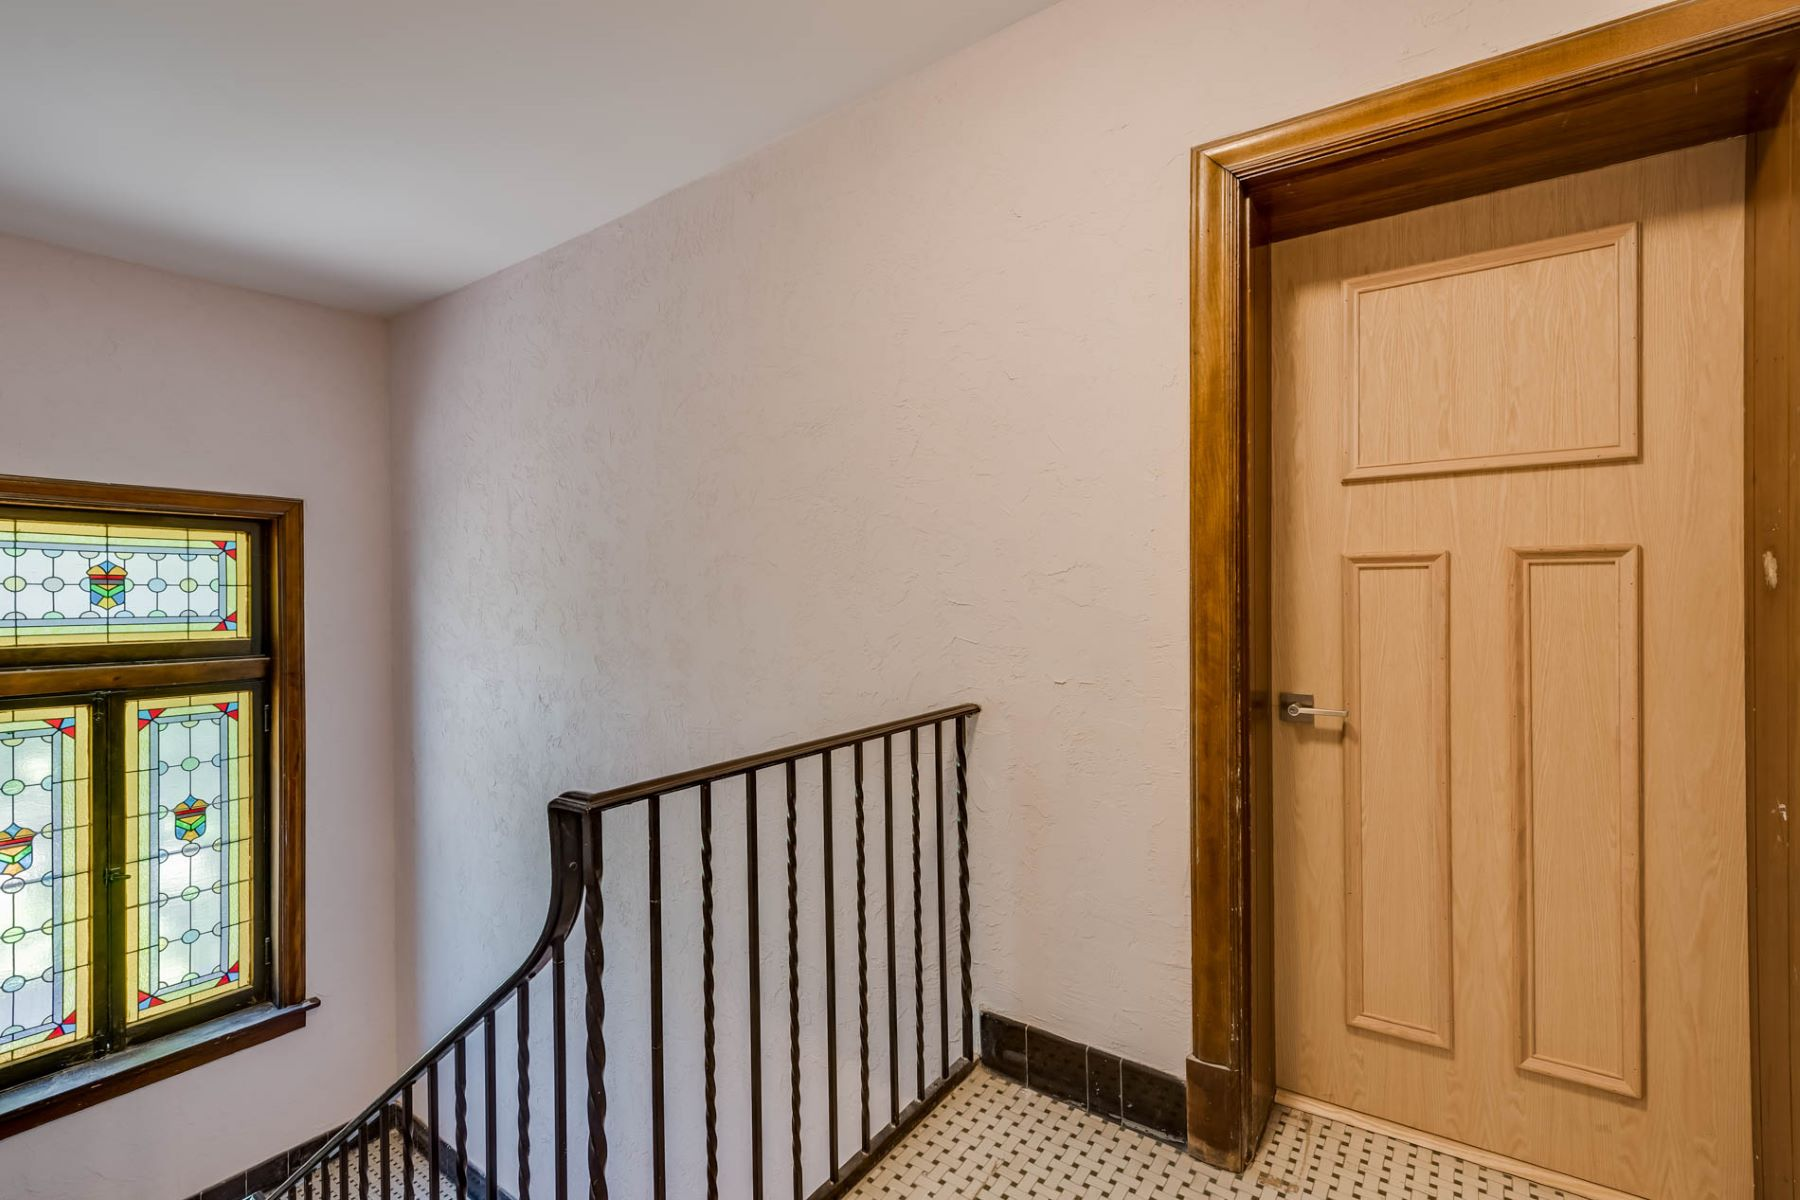 Additional photo for property listing at Wydown Blvd 7552 Wydown Blvd #1W St. Louis, Missouri 63105 United States